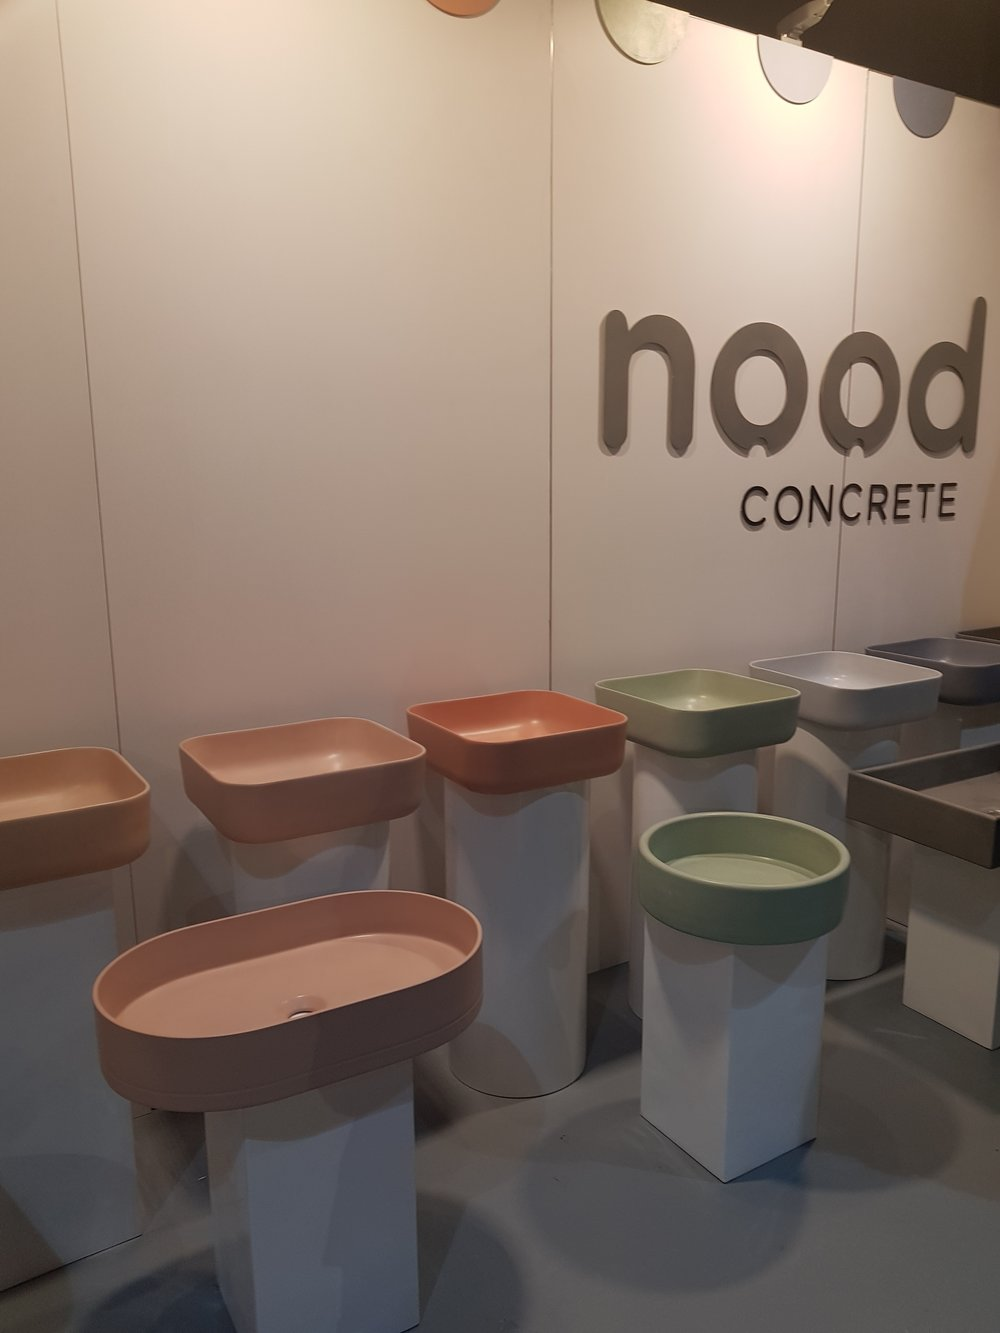 A rainbow of basins a Nood Concrete's stand!